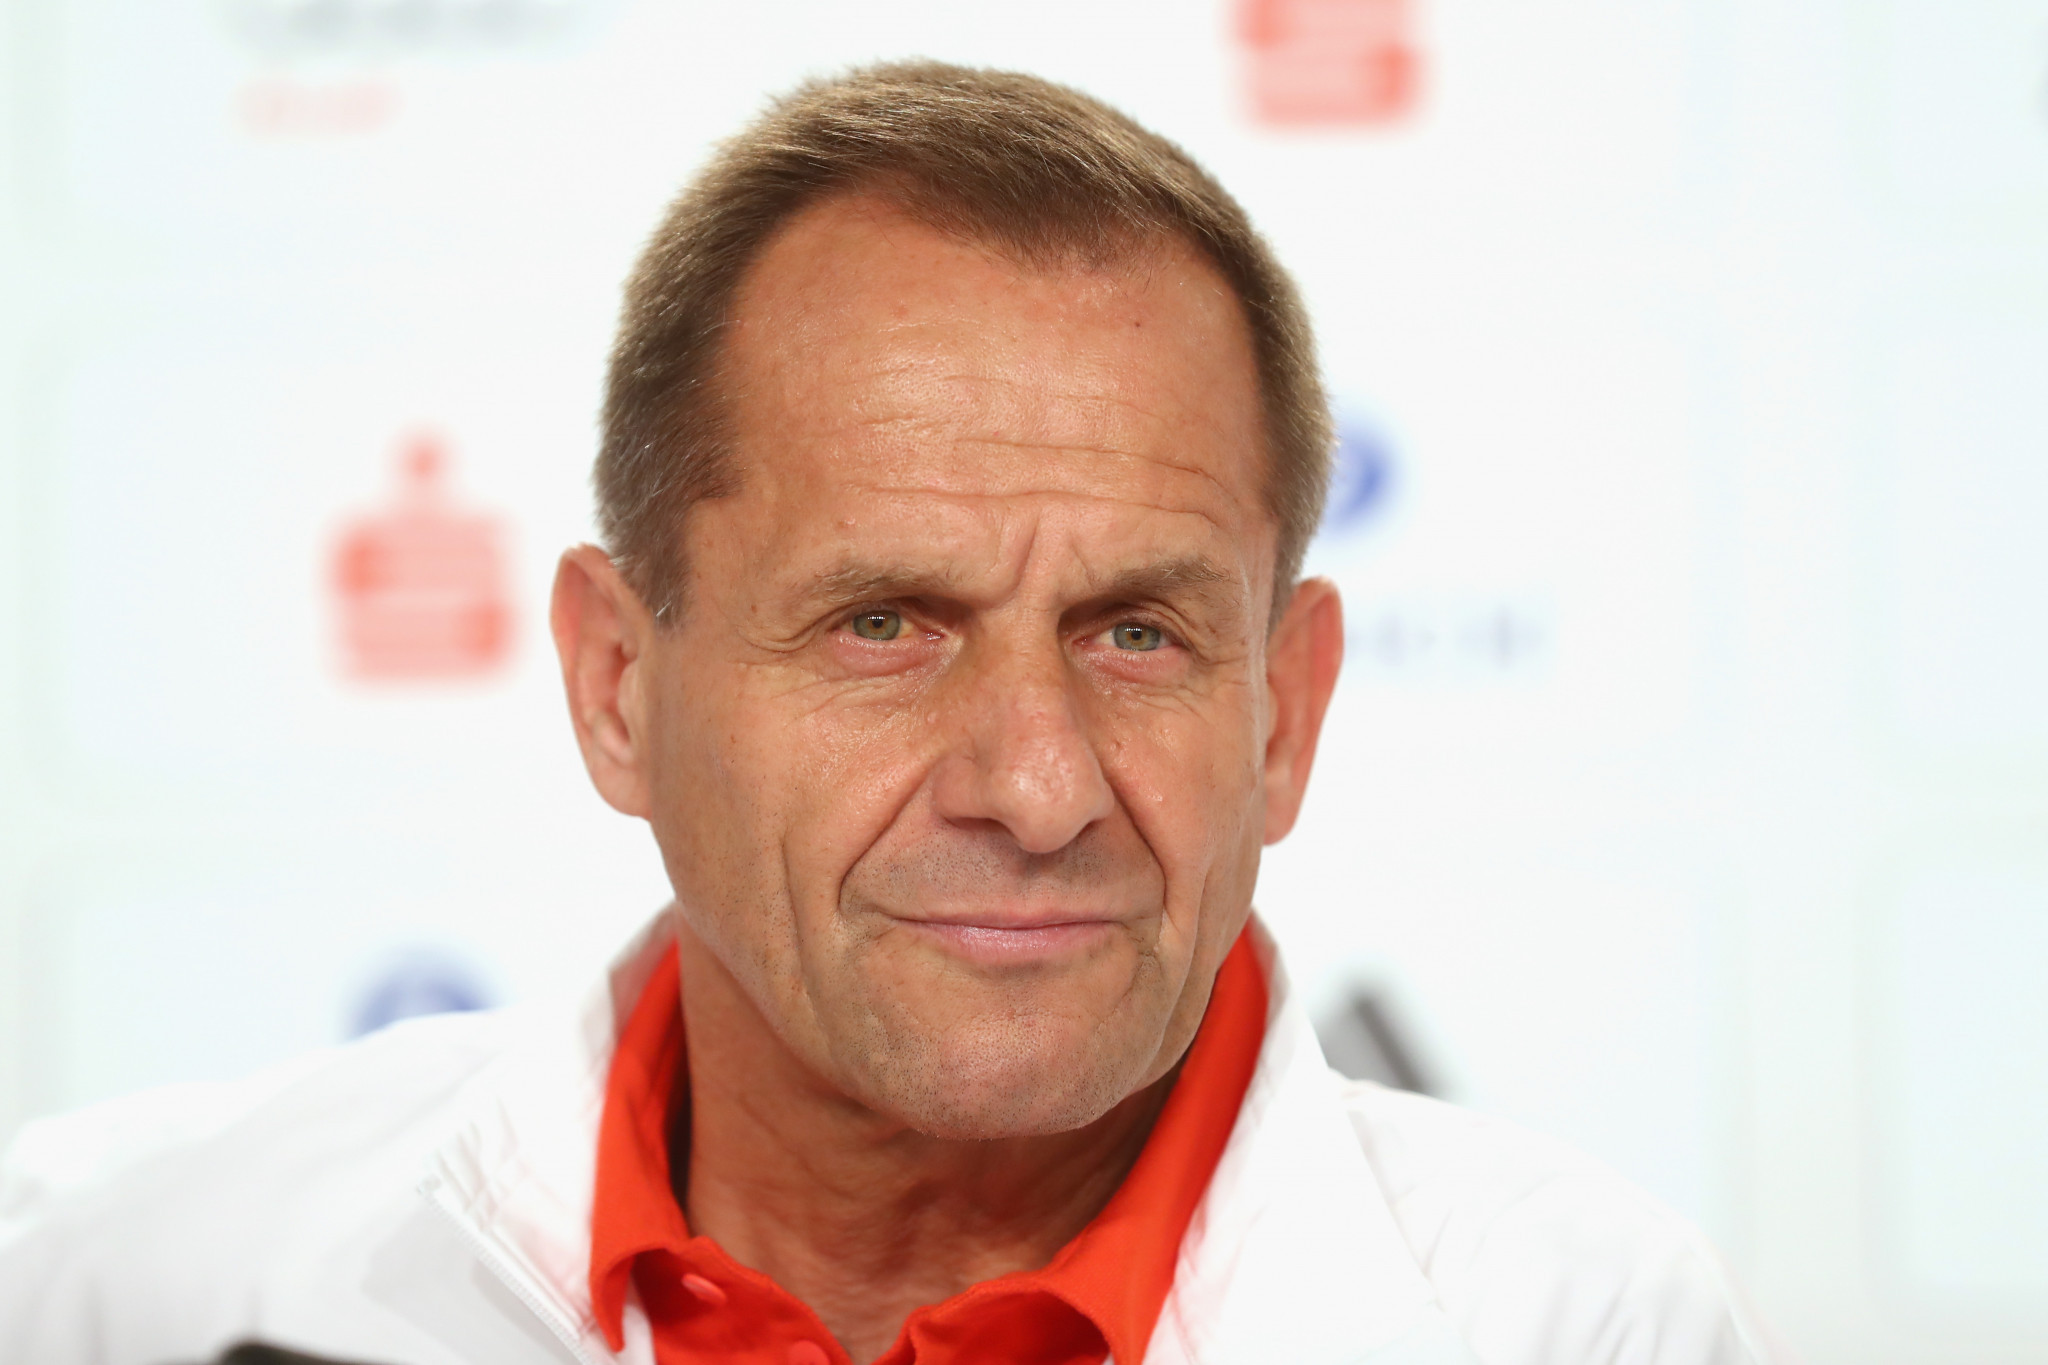 DOSB President Alfons Hormann has warned that sport in Germany at club and association level will be unrecognisable in the coming year ©Getty Images